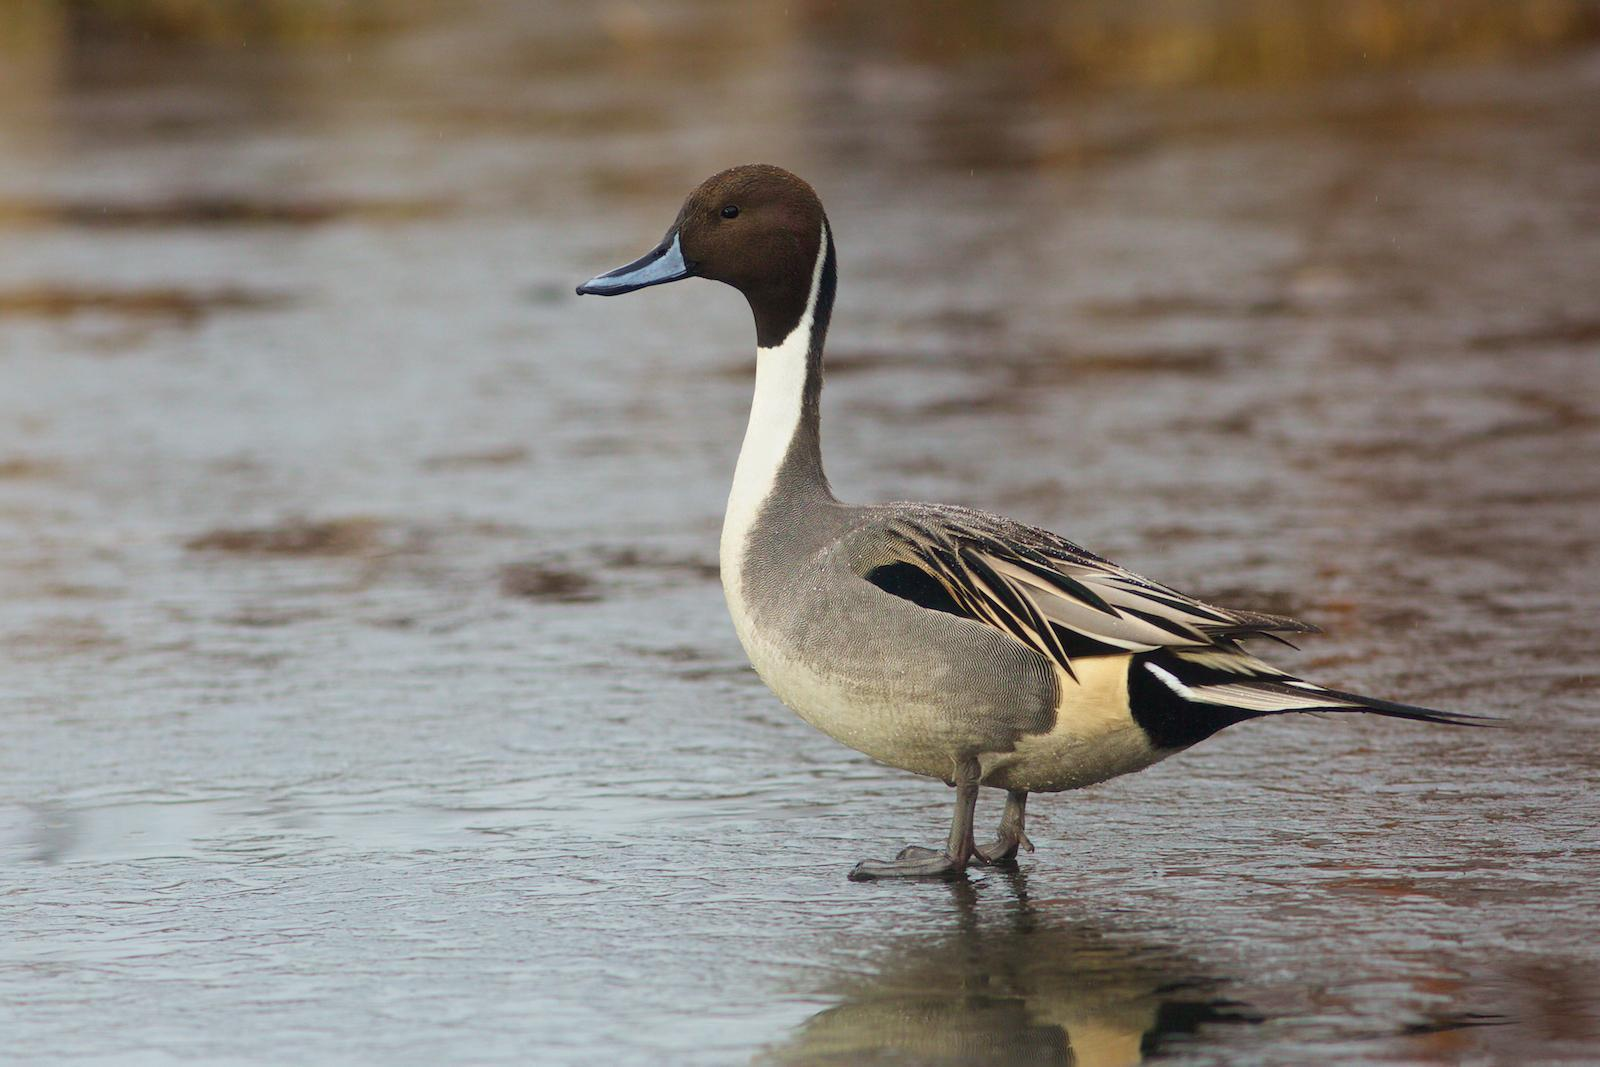 Northern Pintail Photo by Robin Horn